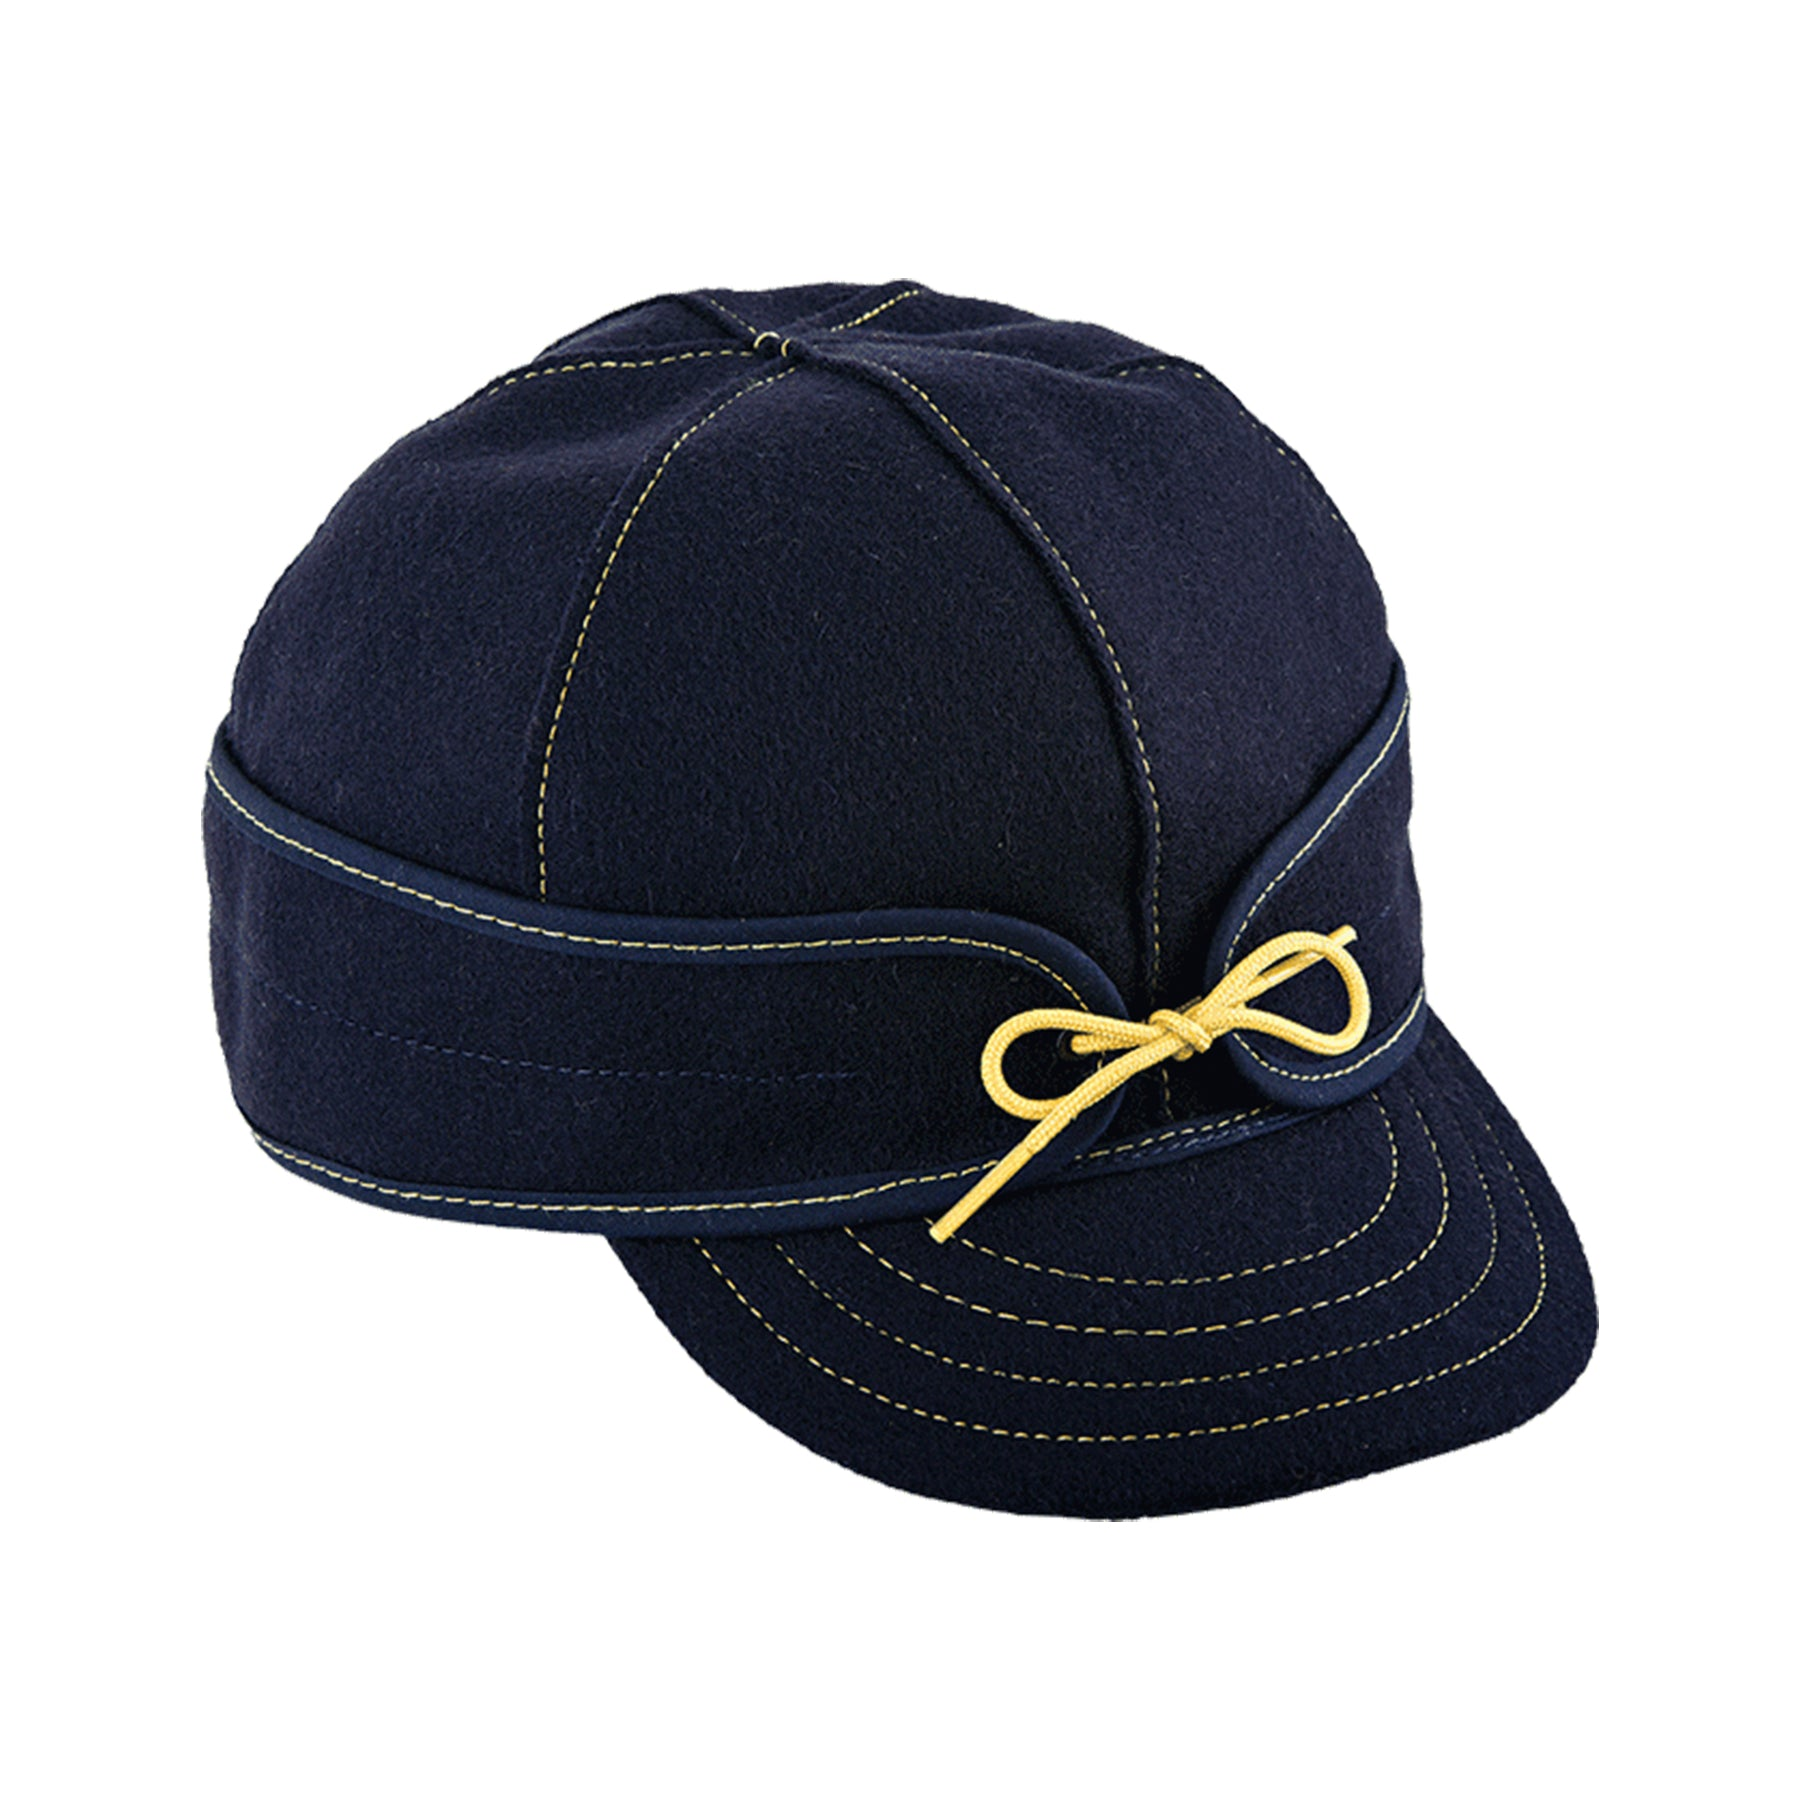 Original Stormy Kromer Wool Cap - Navy & Gold